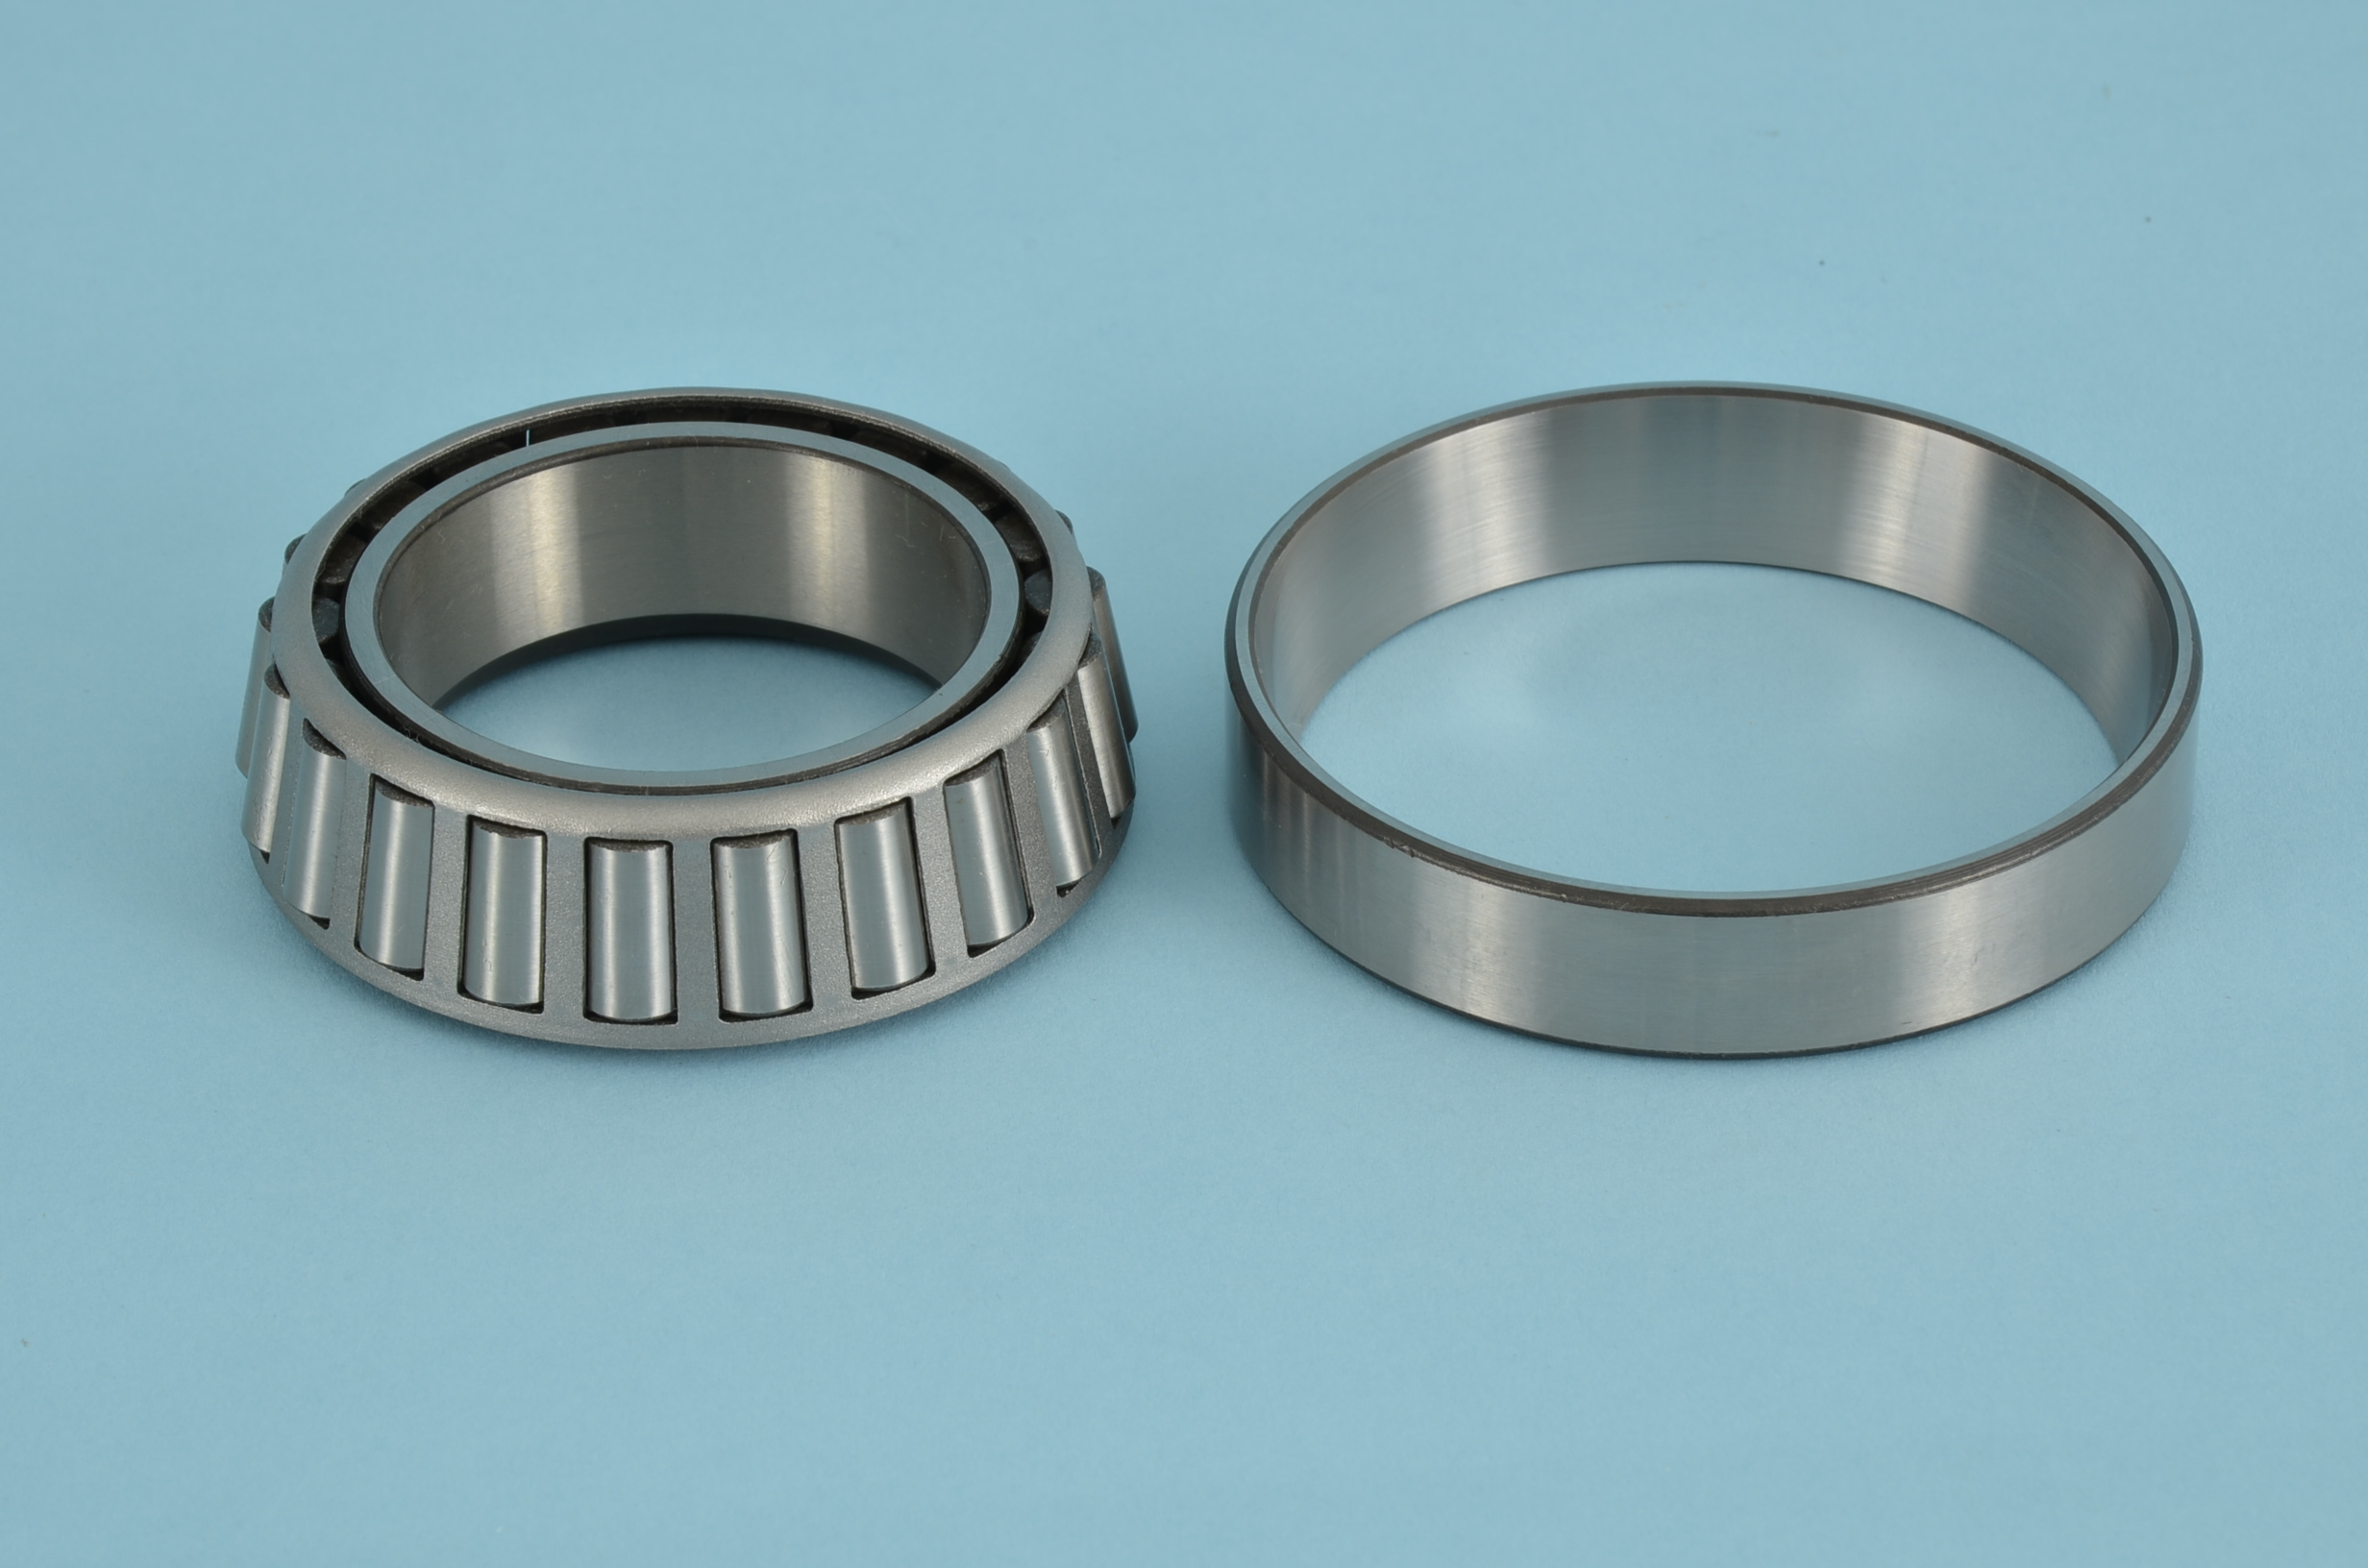 UPPER BEARING GEAR ASSEMBLY